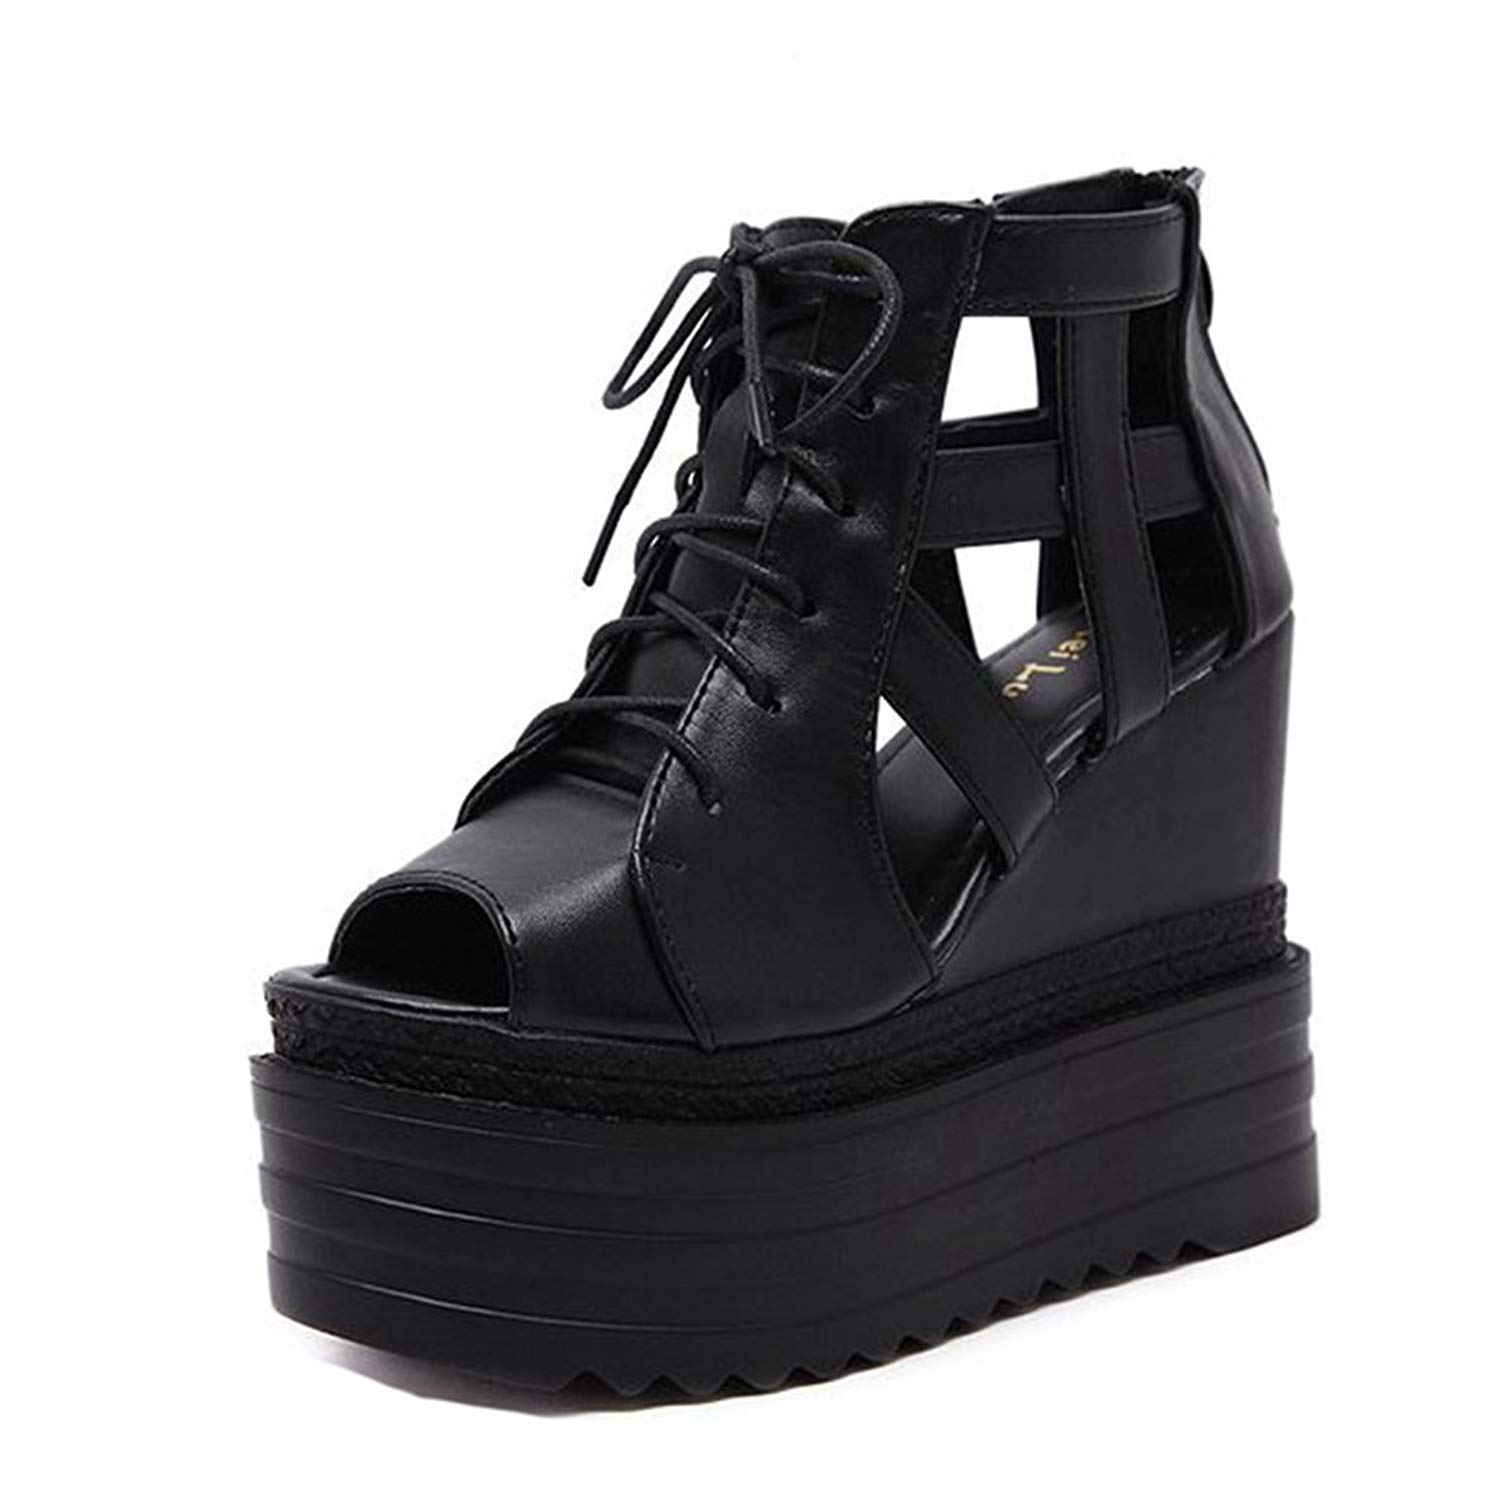 e8db56207234 Get Quotations · GIY Women s Platform Wedges Sandals Gladiator Peep Toe  Chunky Hidden Heel Zipper Lace up Booties Black